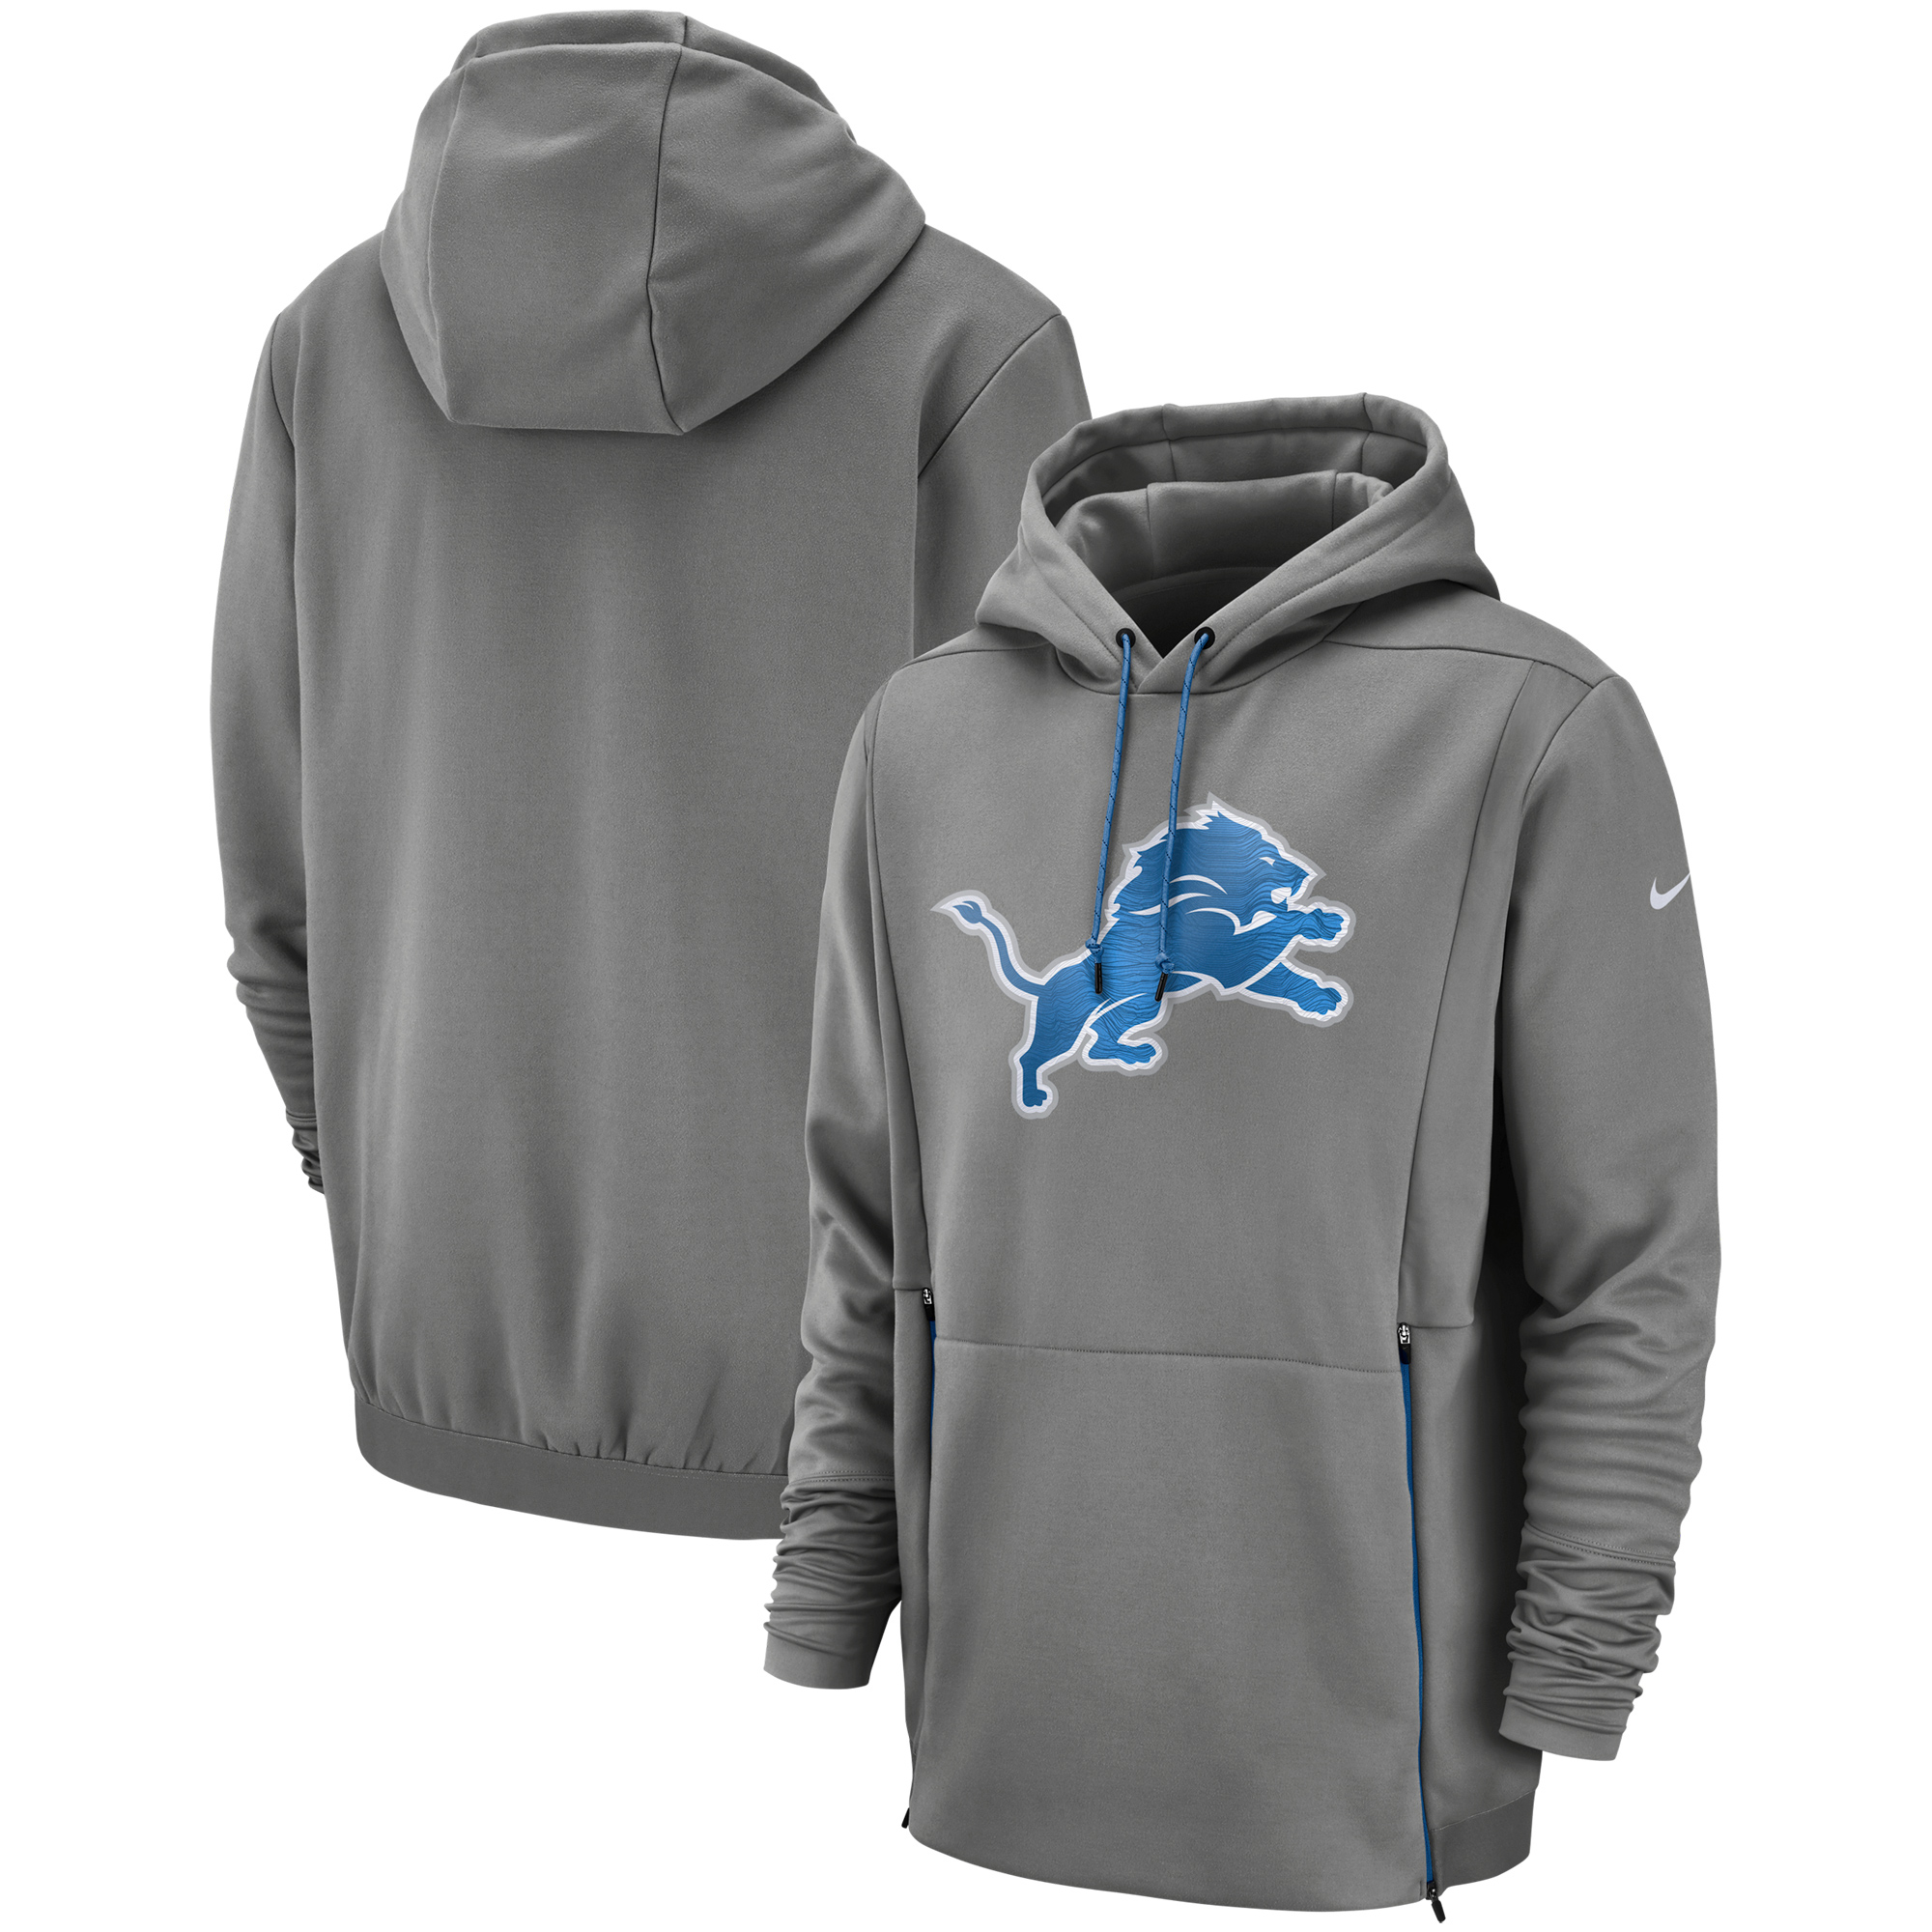 buy popular f26e7 54a8e Detroit Lions Nike Sideline Performance Player Pullover Hoodie - Gray